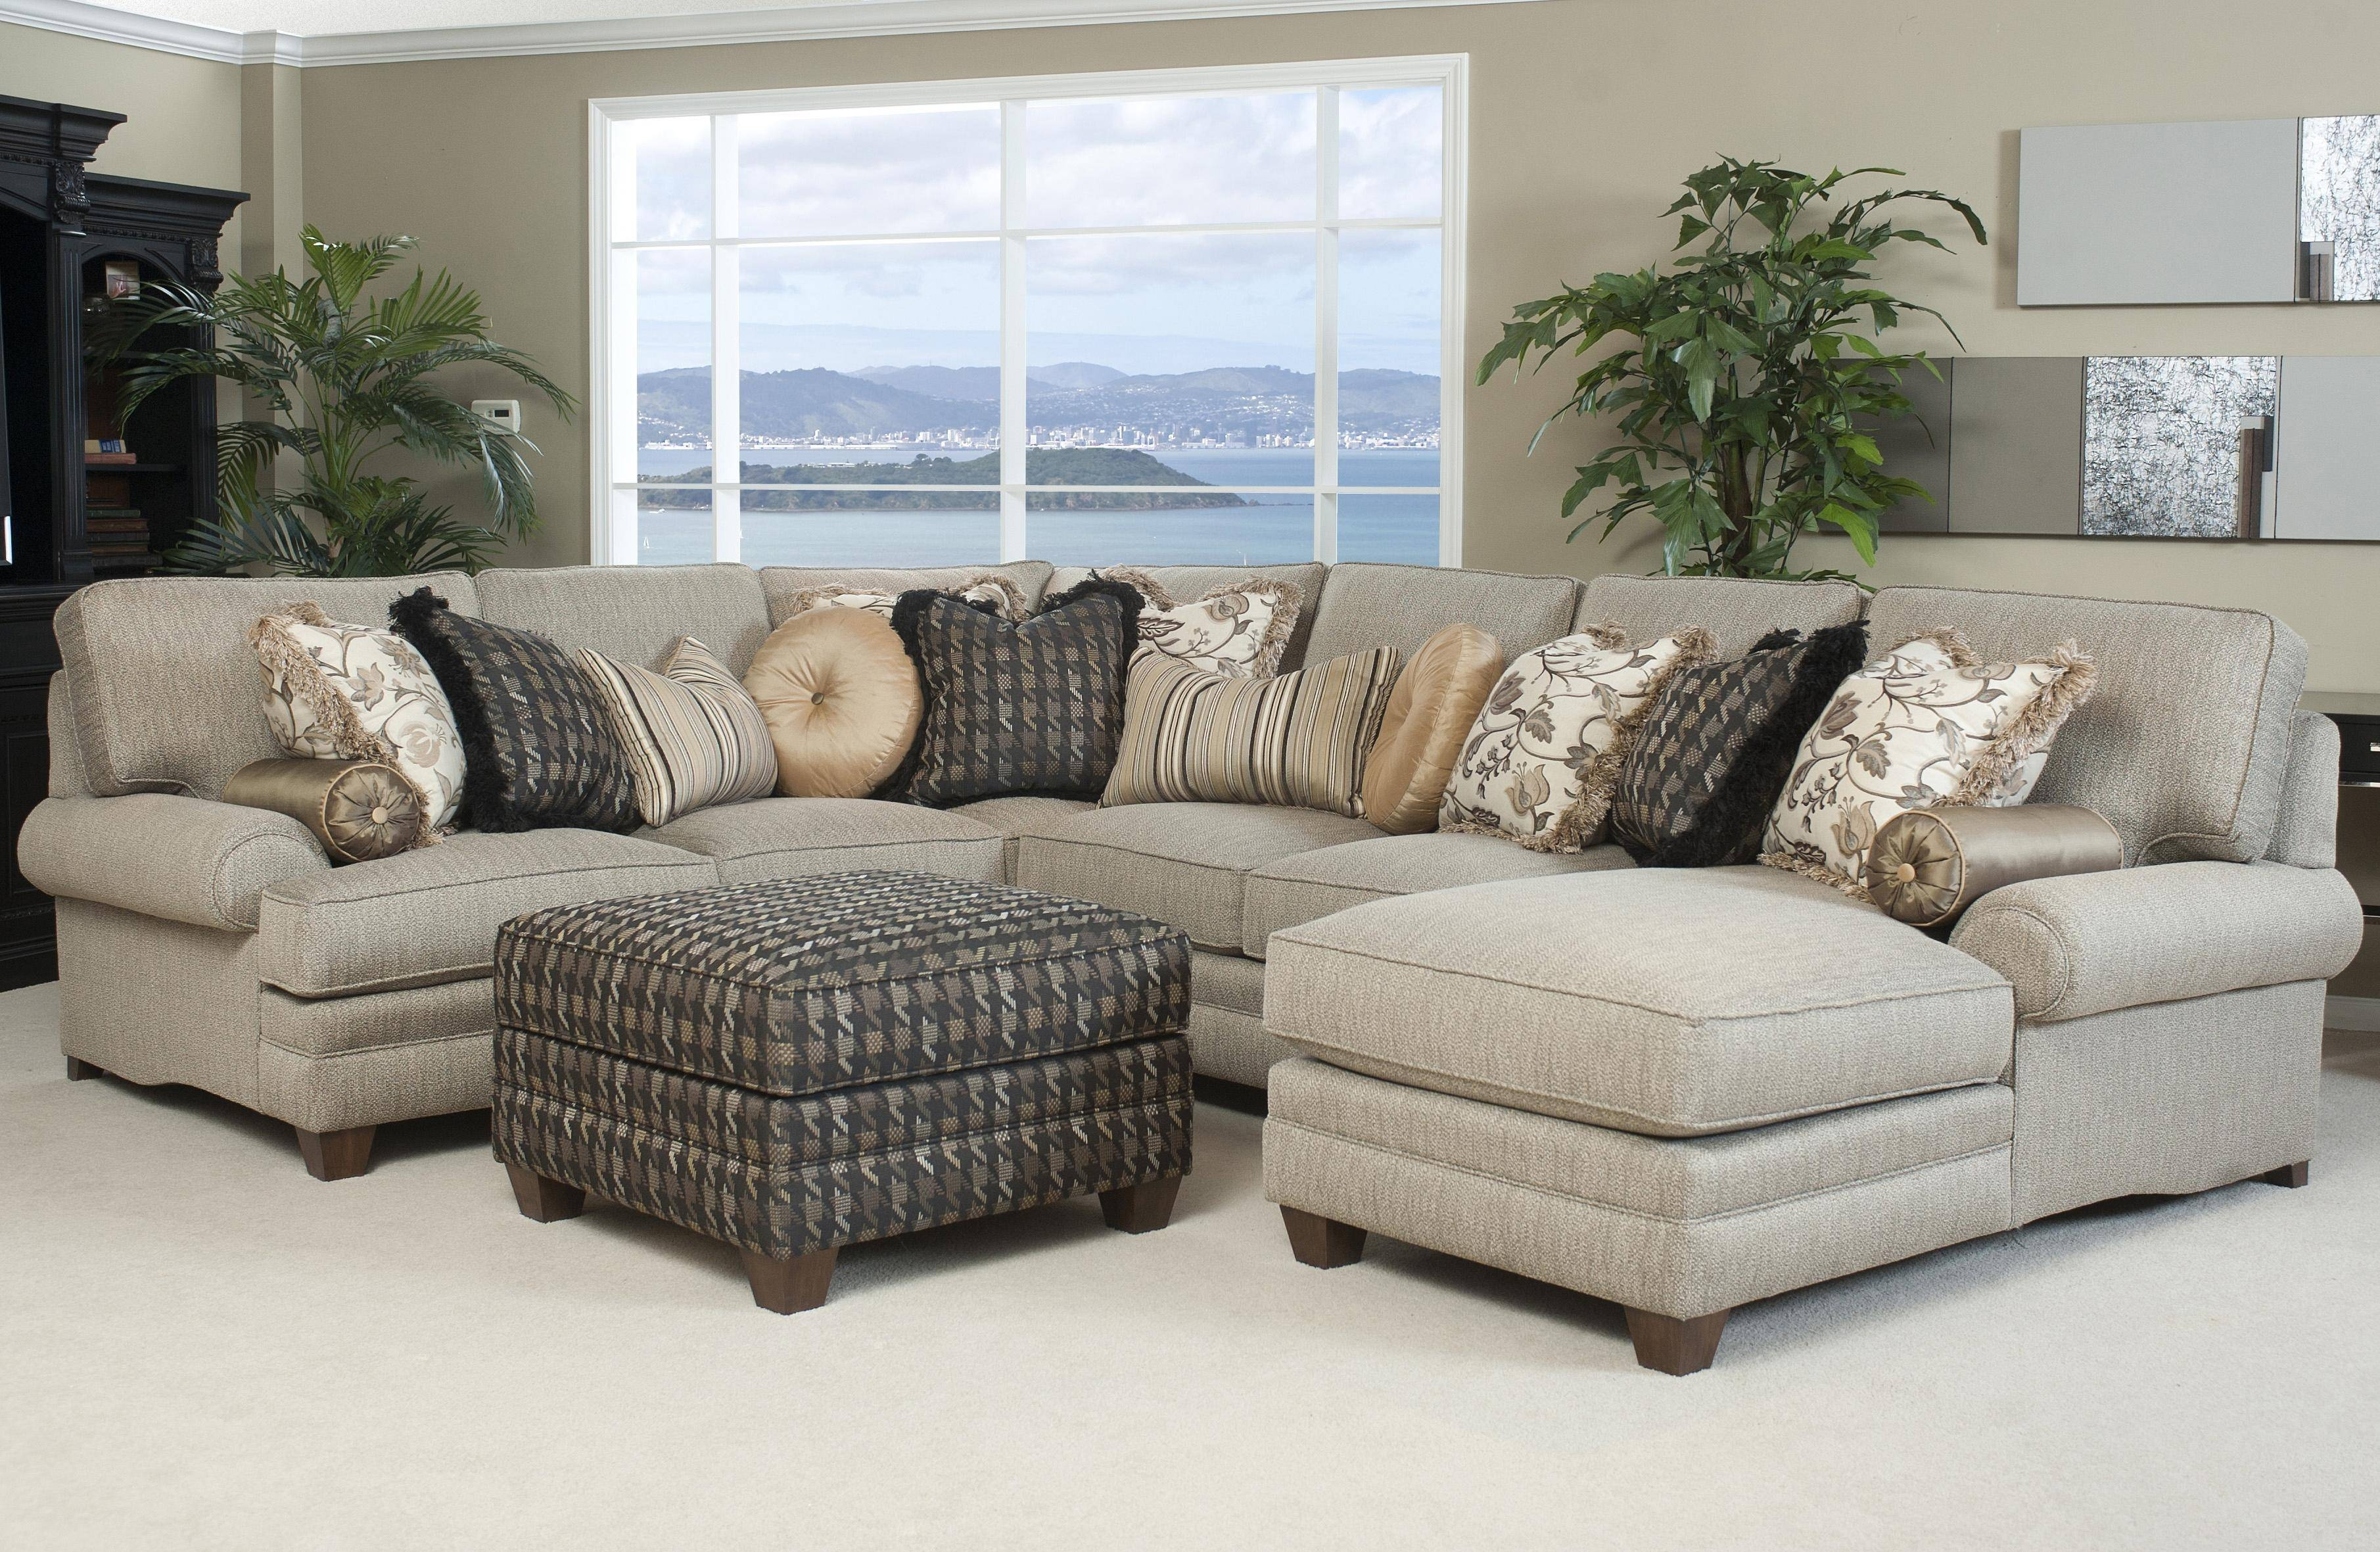 Remarkable Most Comfortable Sectional Sofas 29 With Additional inside Vintage Leather Sectional Sofas (Image 21 of 30)